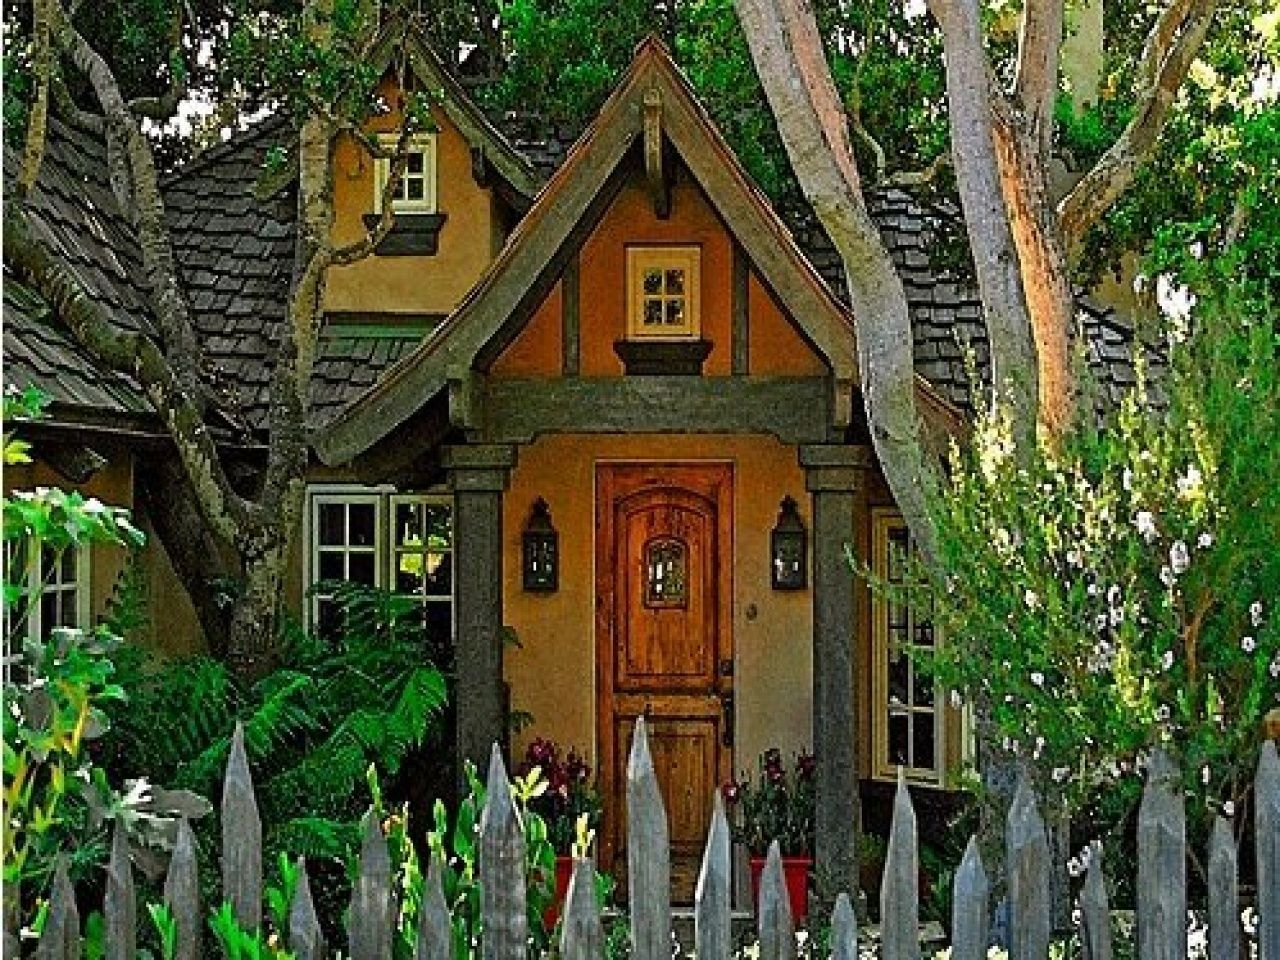 House Plan Fairytale Cottage House Plans Amazing Small Fairy Tale Cottage House Source Atcfkid Org Fairytale House Fairytale Cottage Storybook Cottage